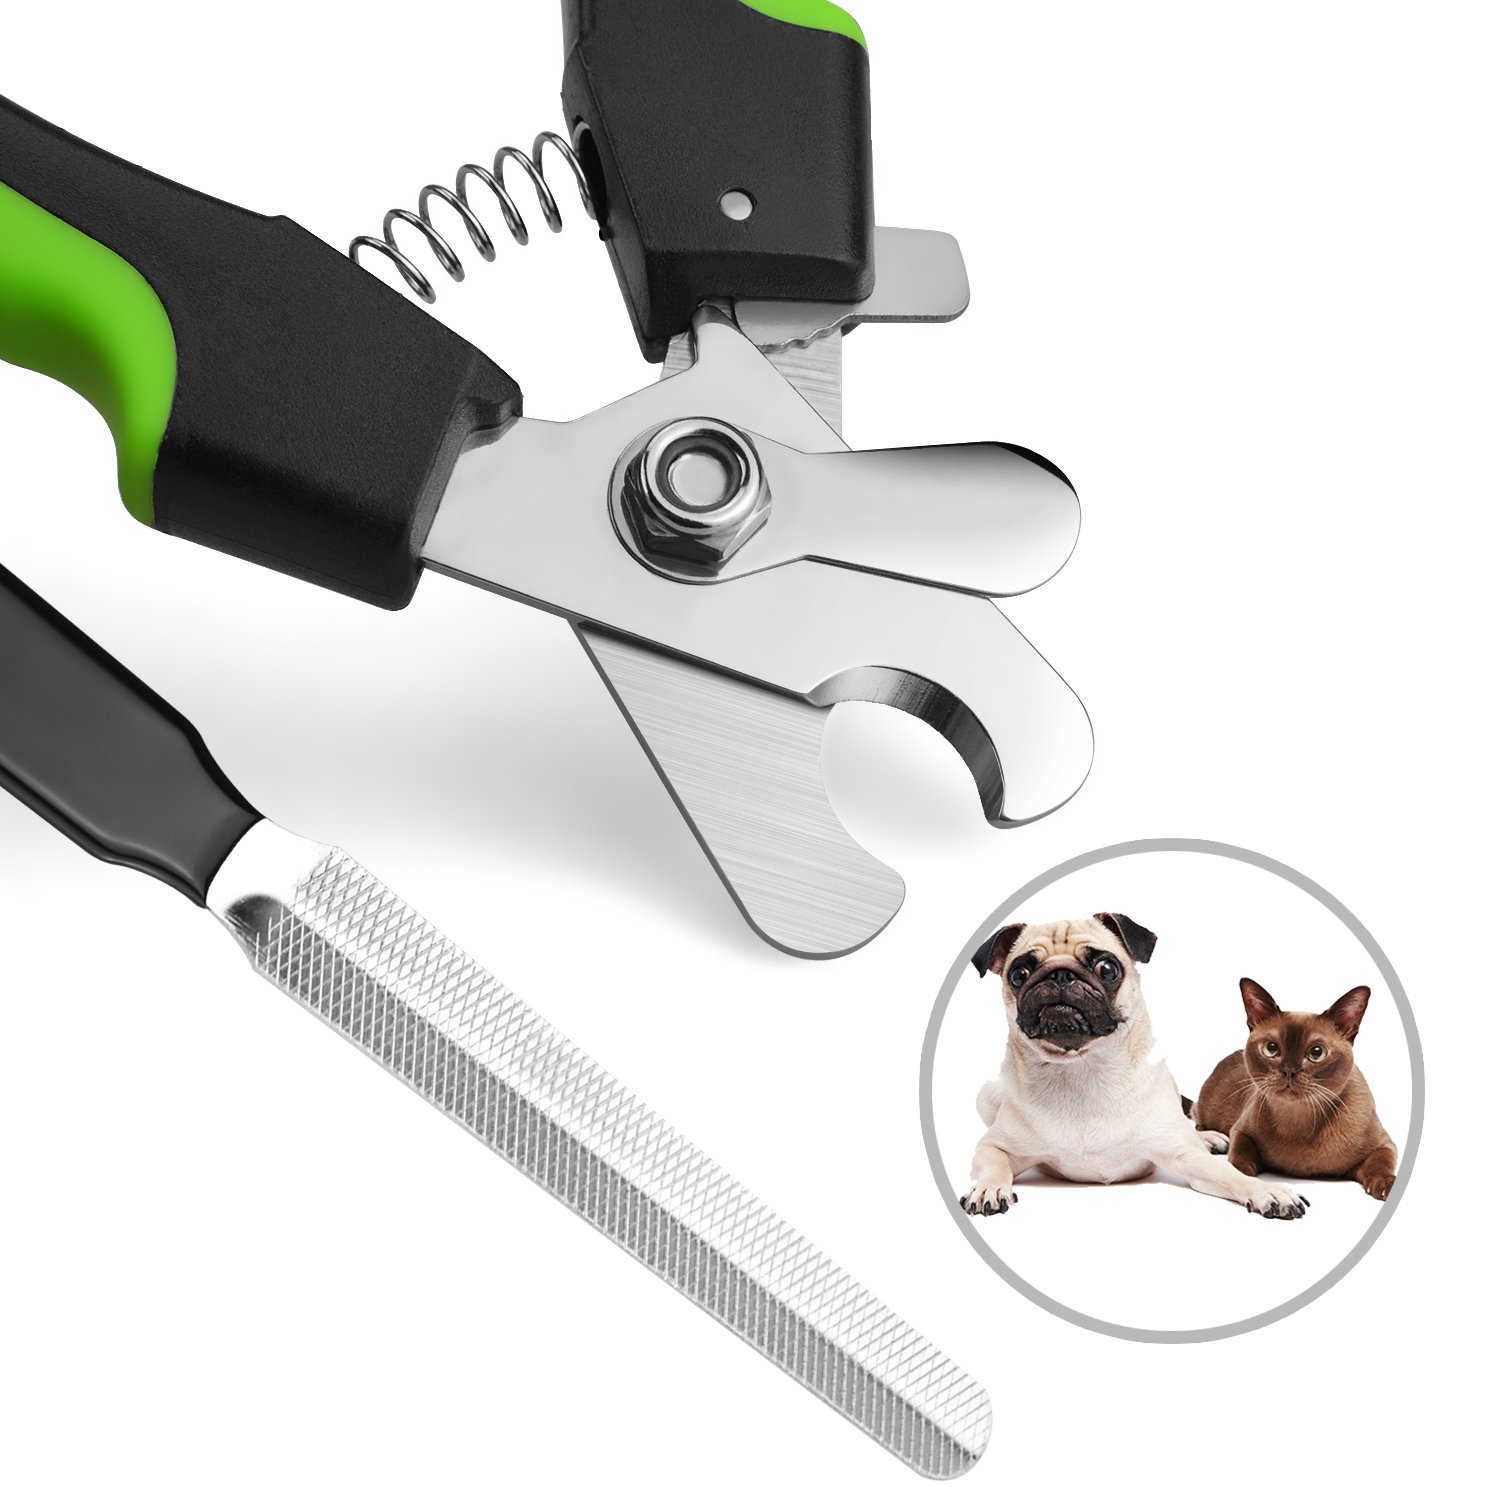 Dog Nail Clippers Trimmers including Free Nail File to Groom Nails at home with Safety Guard to Avoid Over cutting Nail, Ergonomic Handles for Safe Grooming Pet Nails By WLWQ